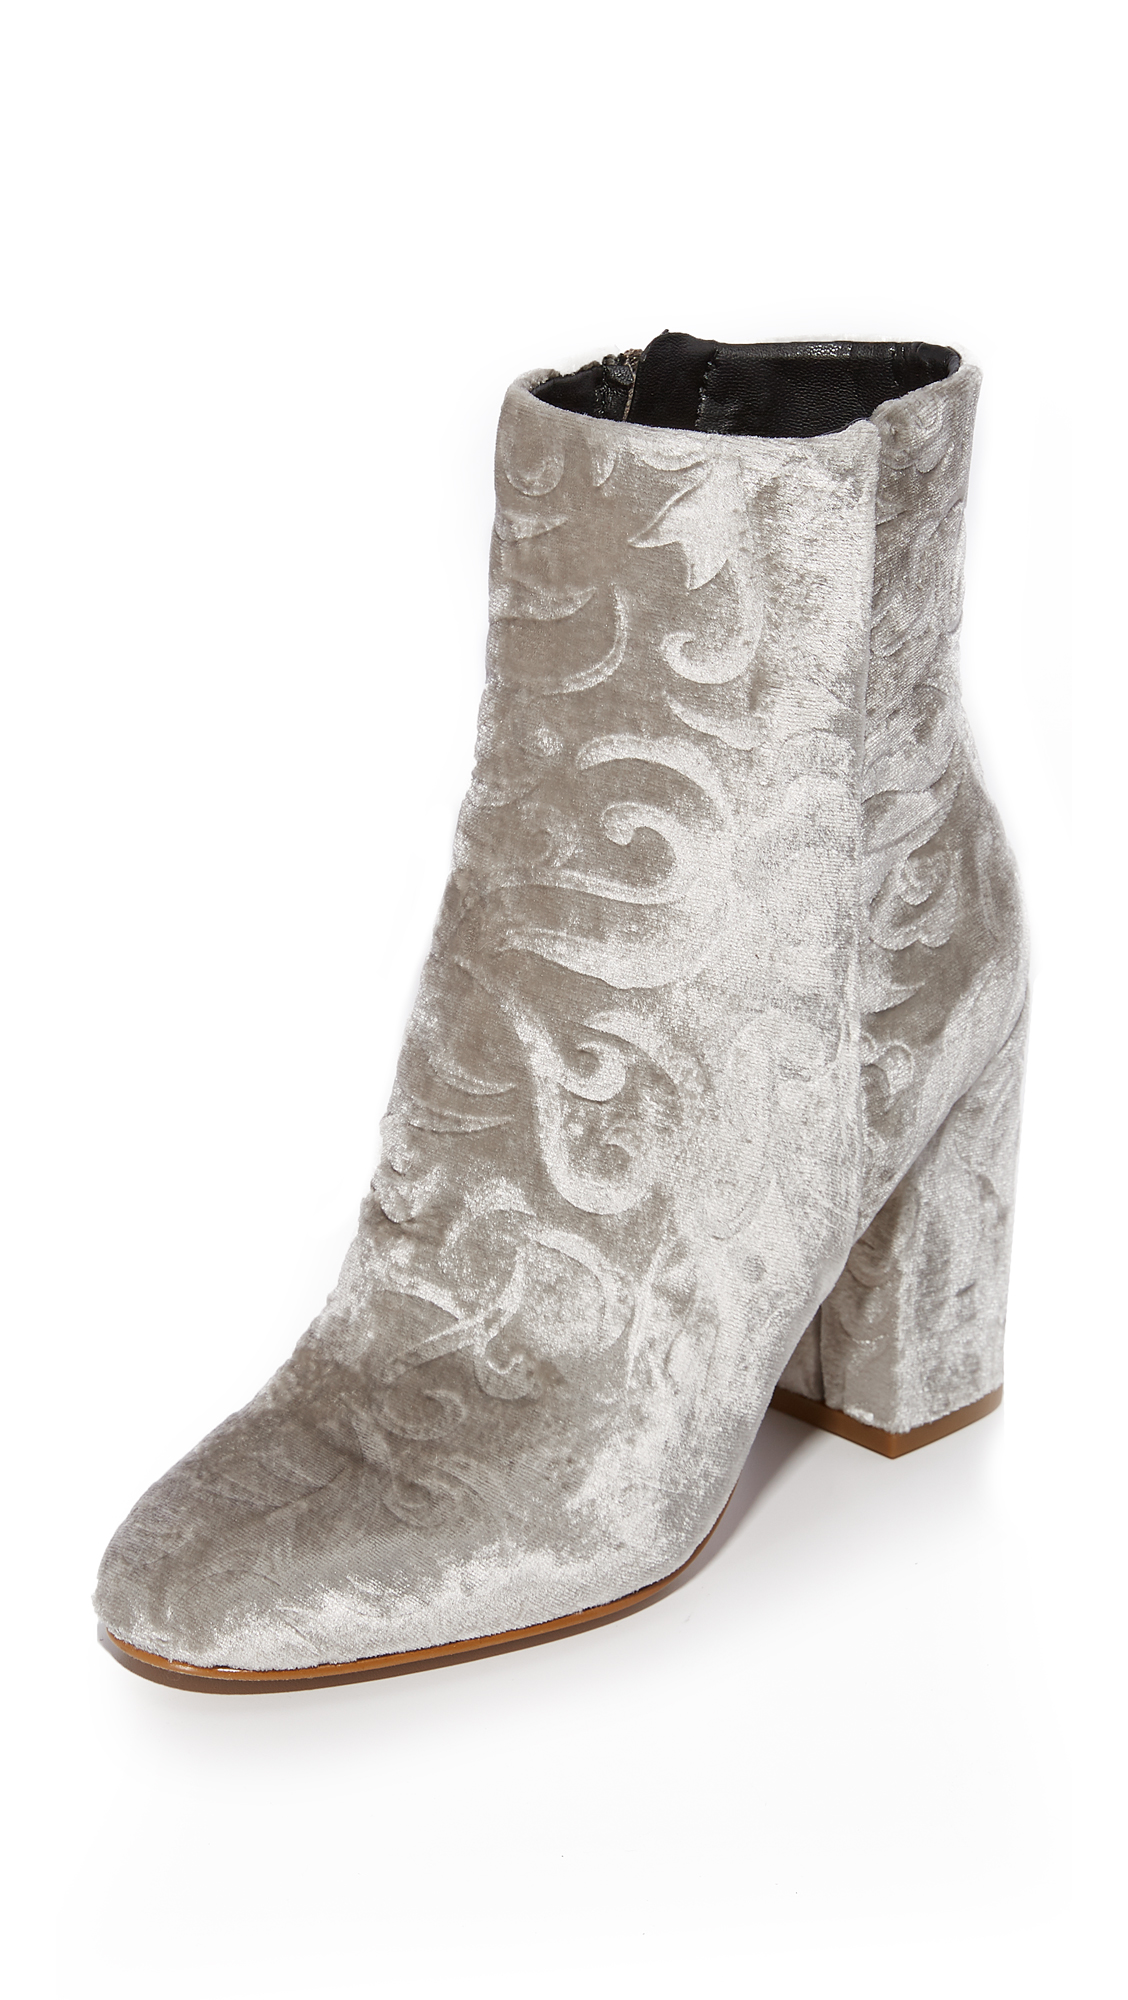 Rebecca Minkoff Bryce Embossed Booties - Sand